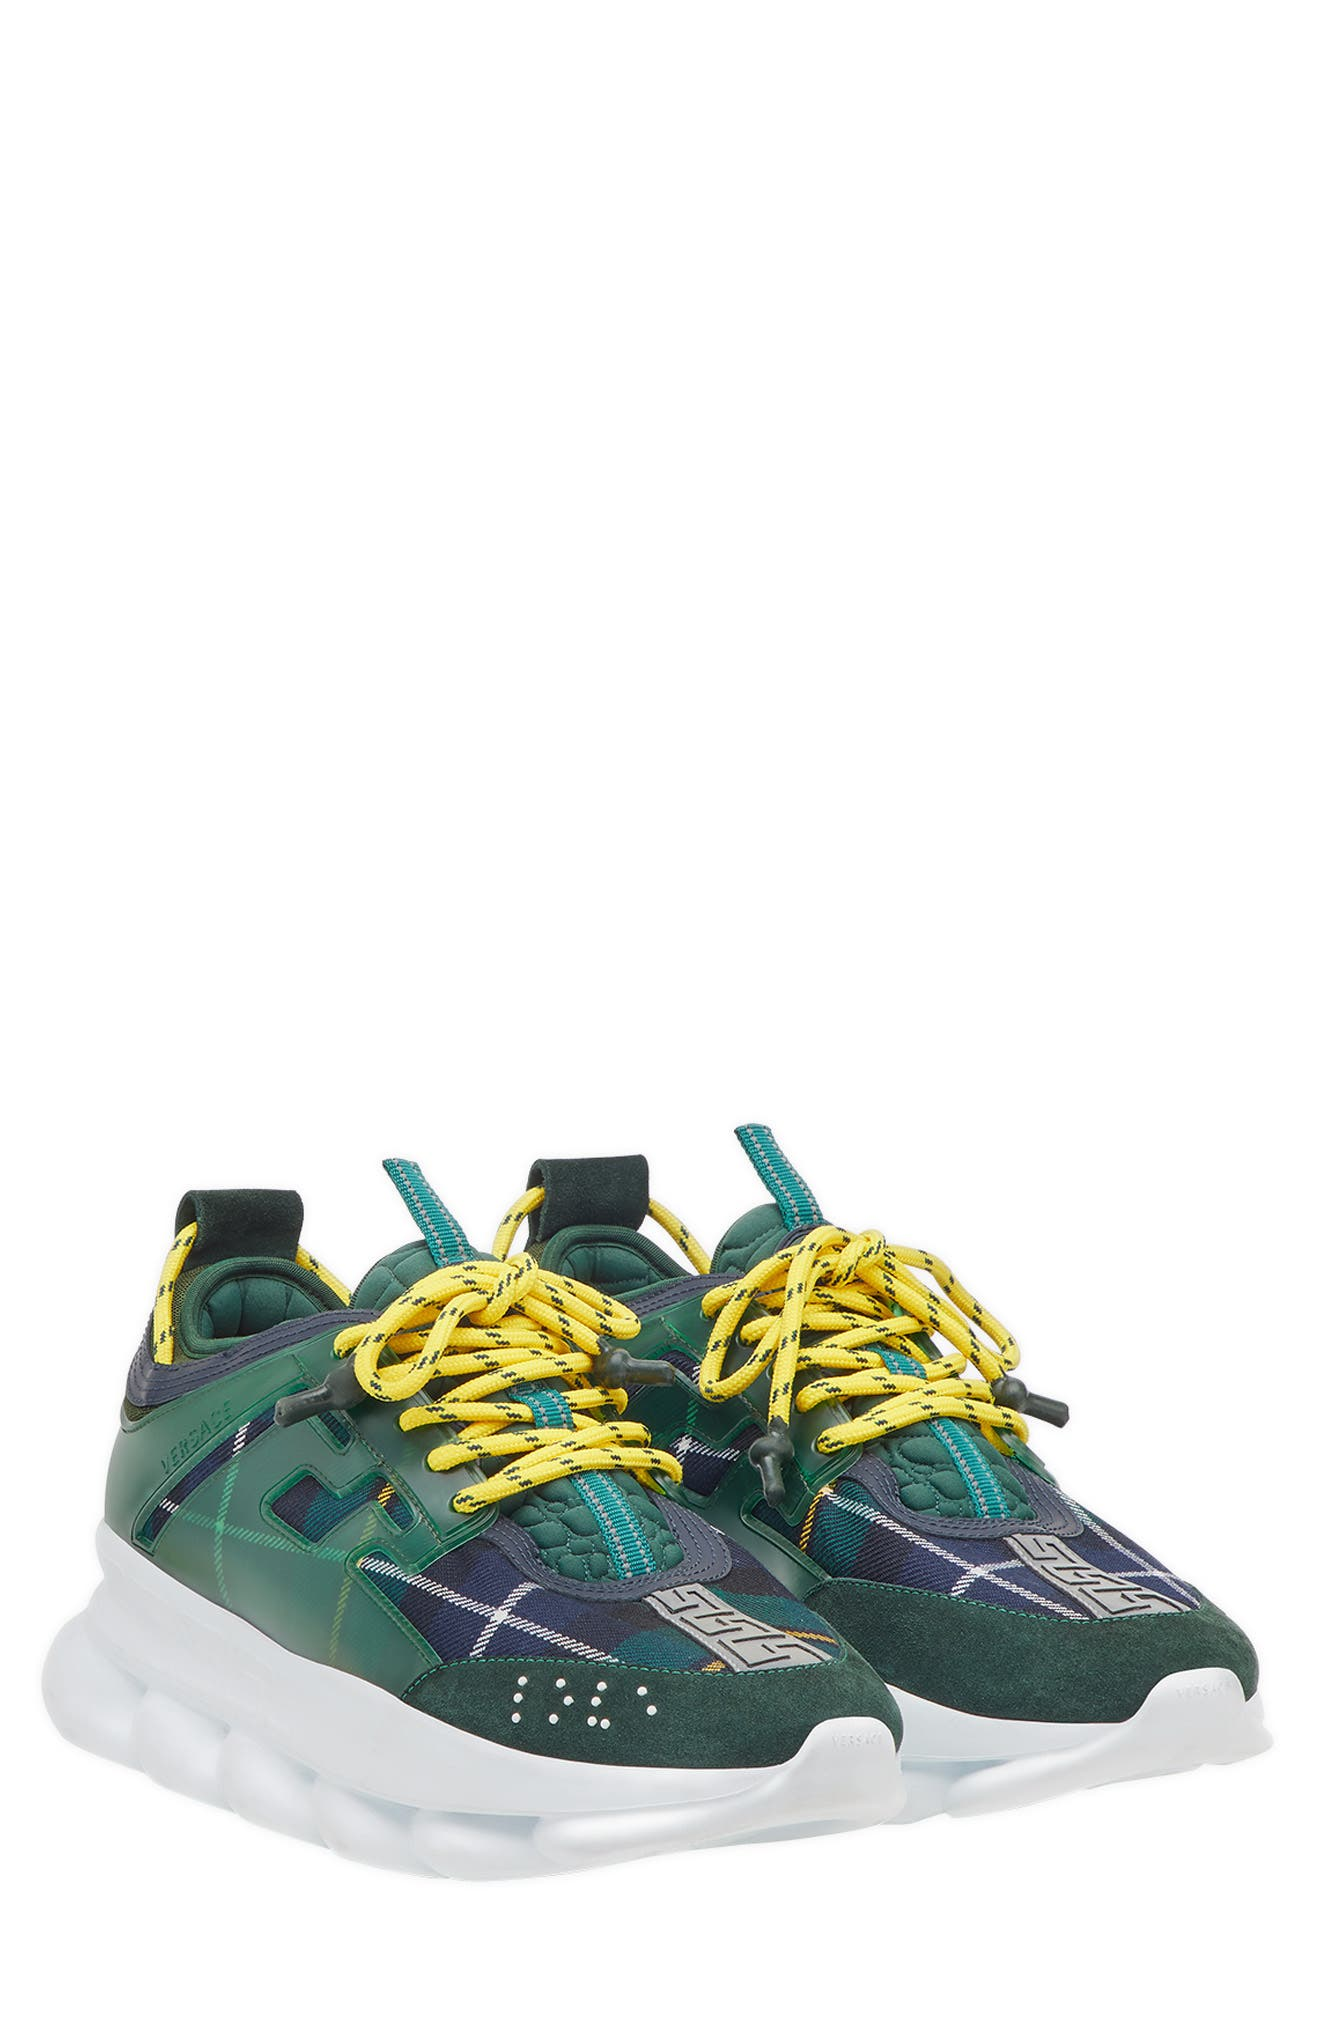 Chain Reaction Sneaker,                         Main,                         color, VERDE/ GIALLO